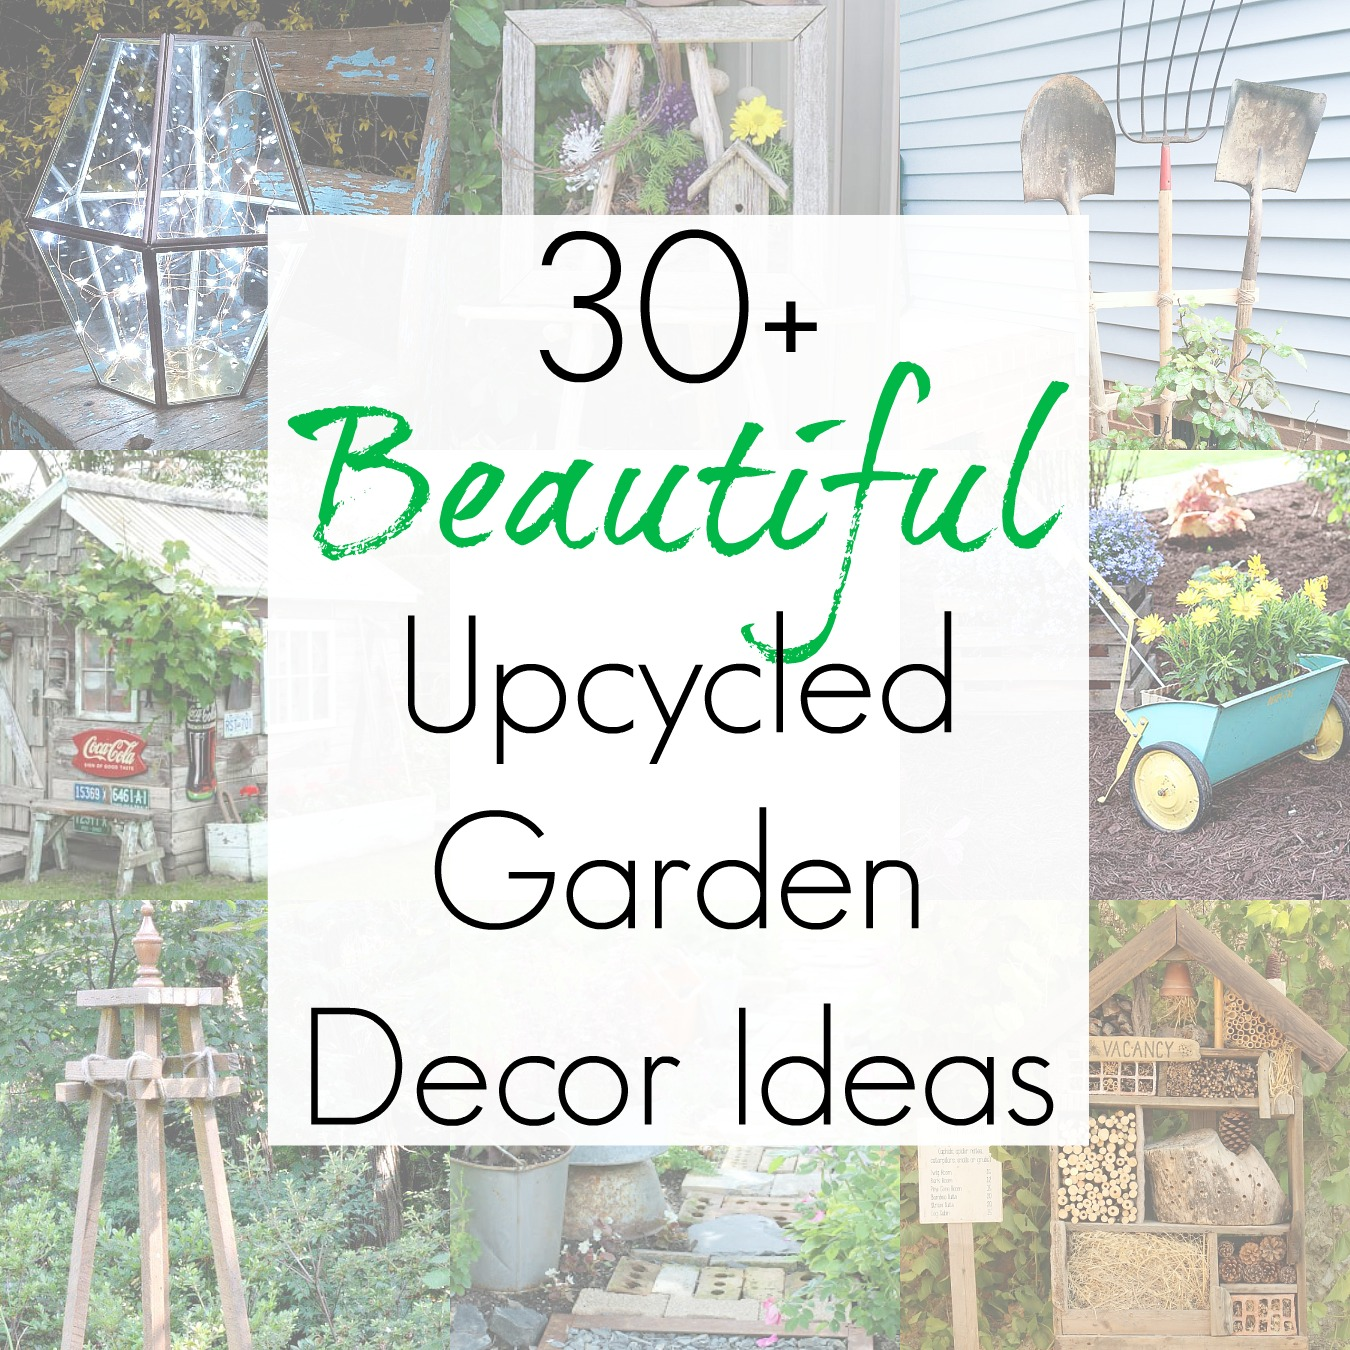 30+ Quirky Garden Ideas and Upcycling Projects for Garden Decor